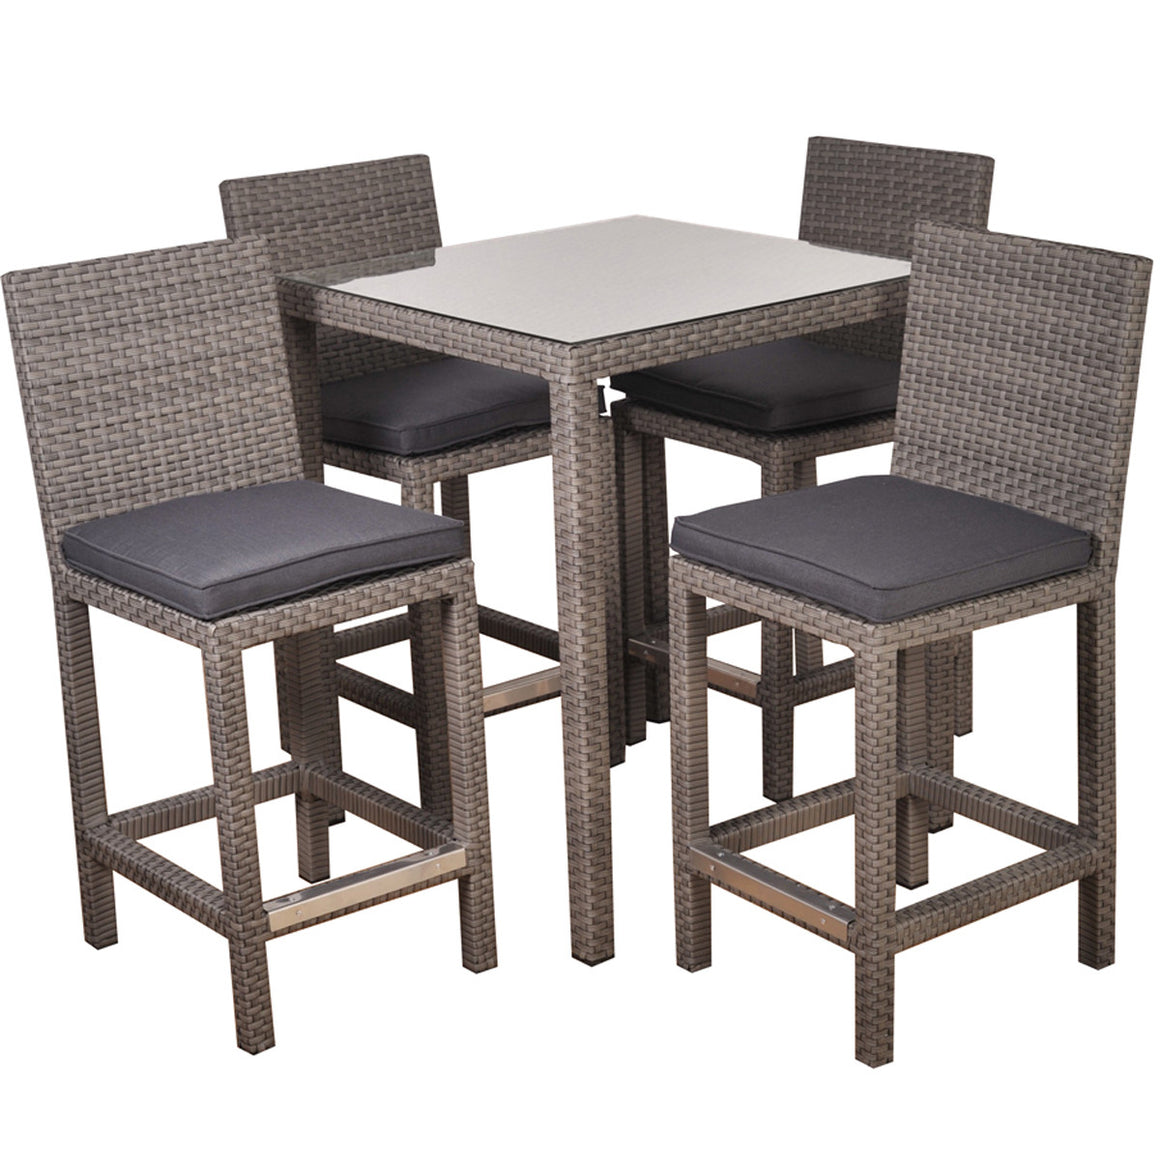 Monza Square 5 piece Patio Bar Set Grey with Grey Cushions , International Home Miami- grayburd